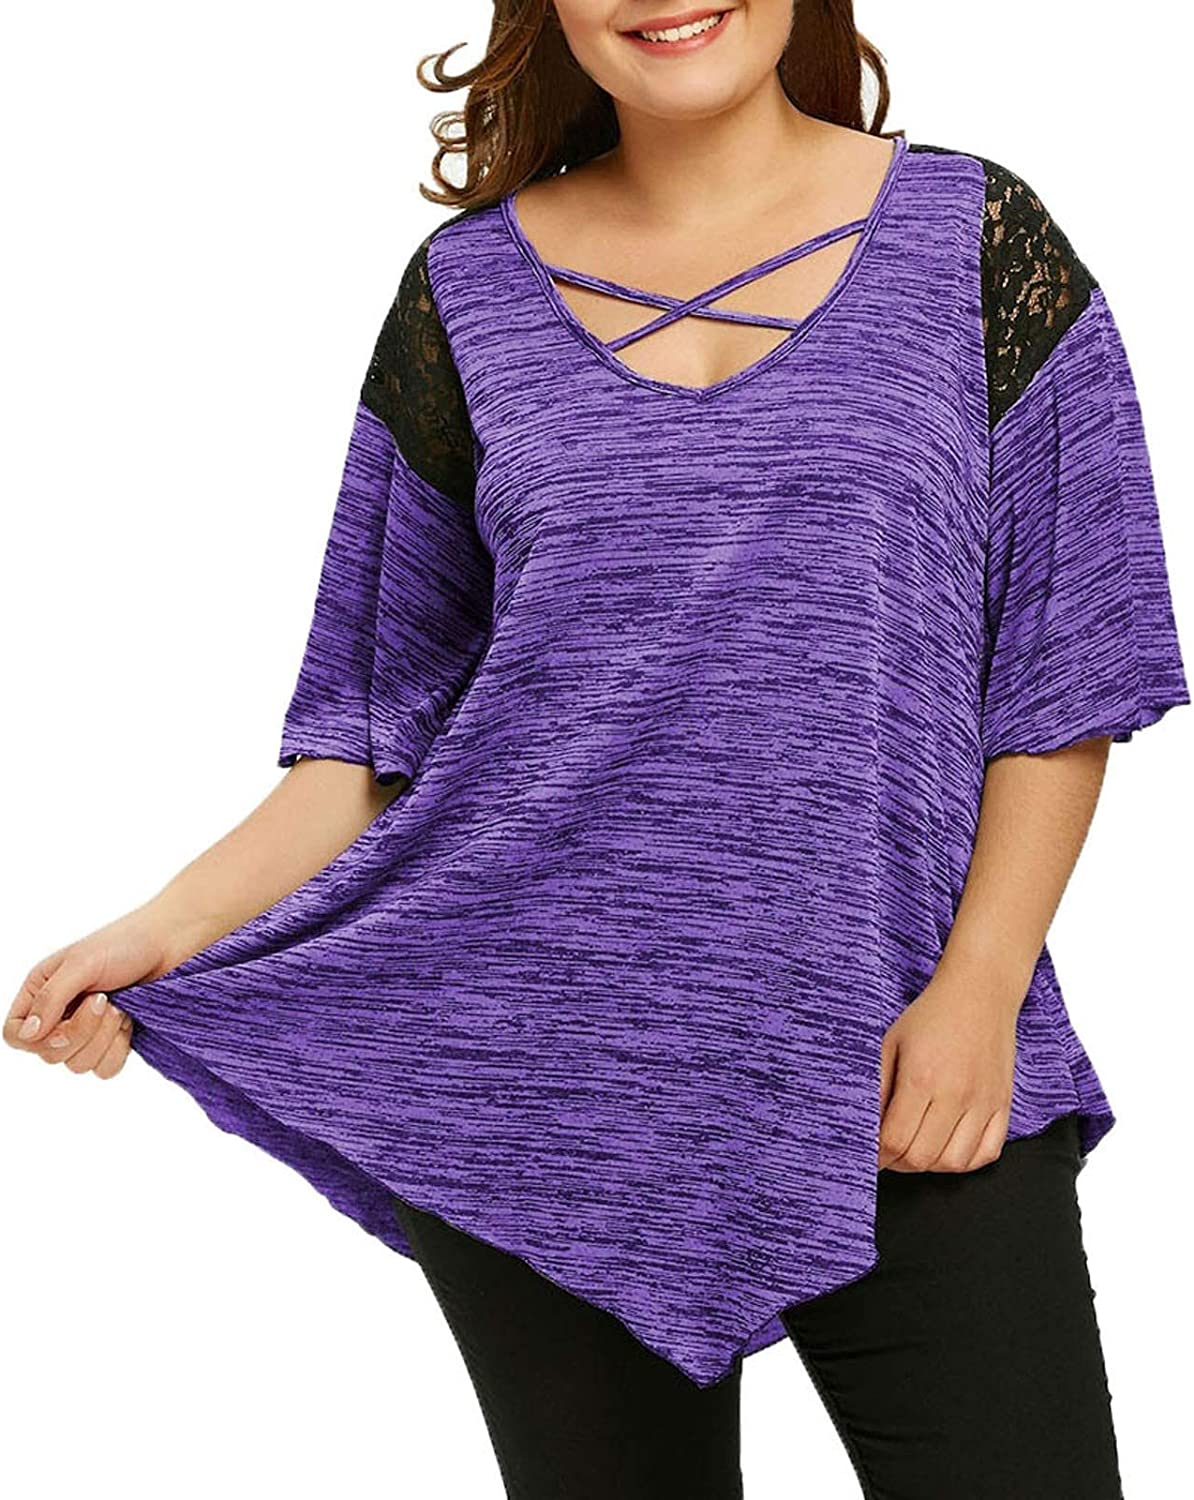 Smileyth Max 55% OFF Womens Plus Size Tunic free shipping Lace T-Shirt Criss Summer Casual